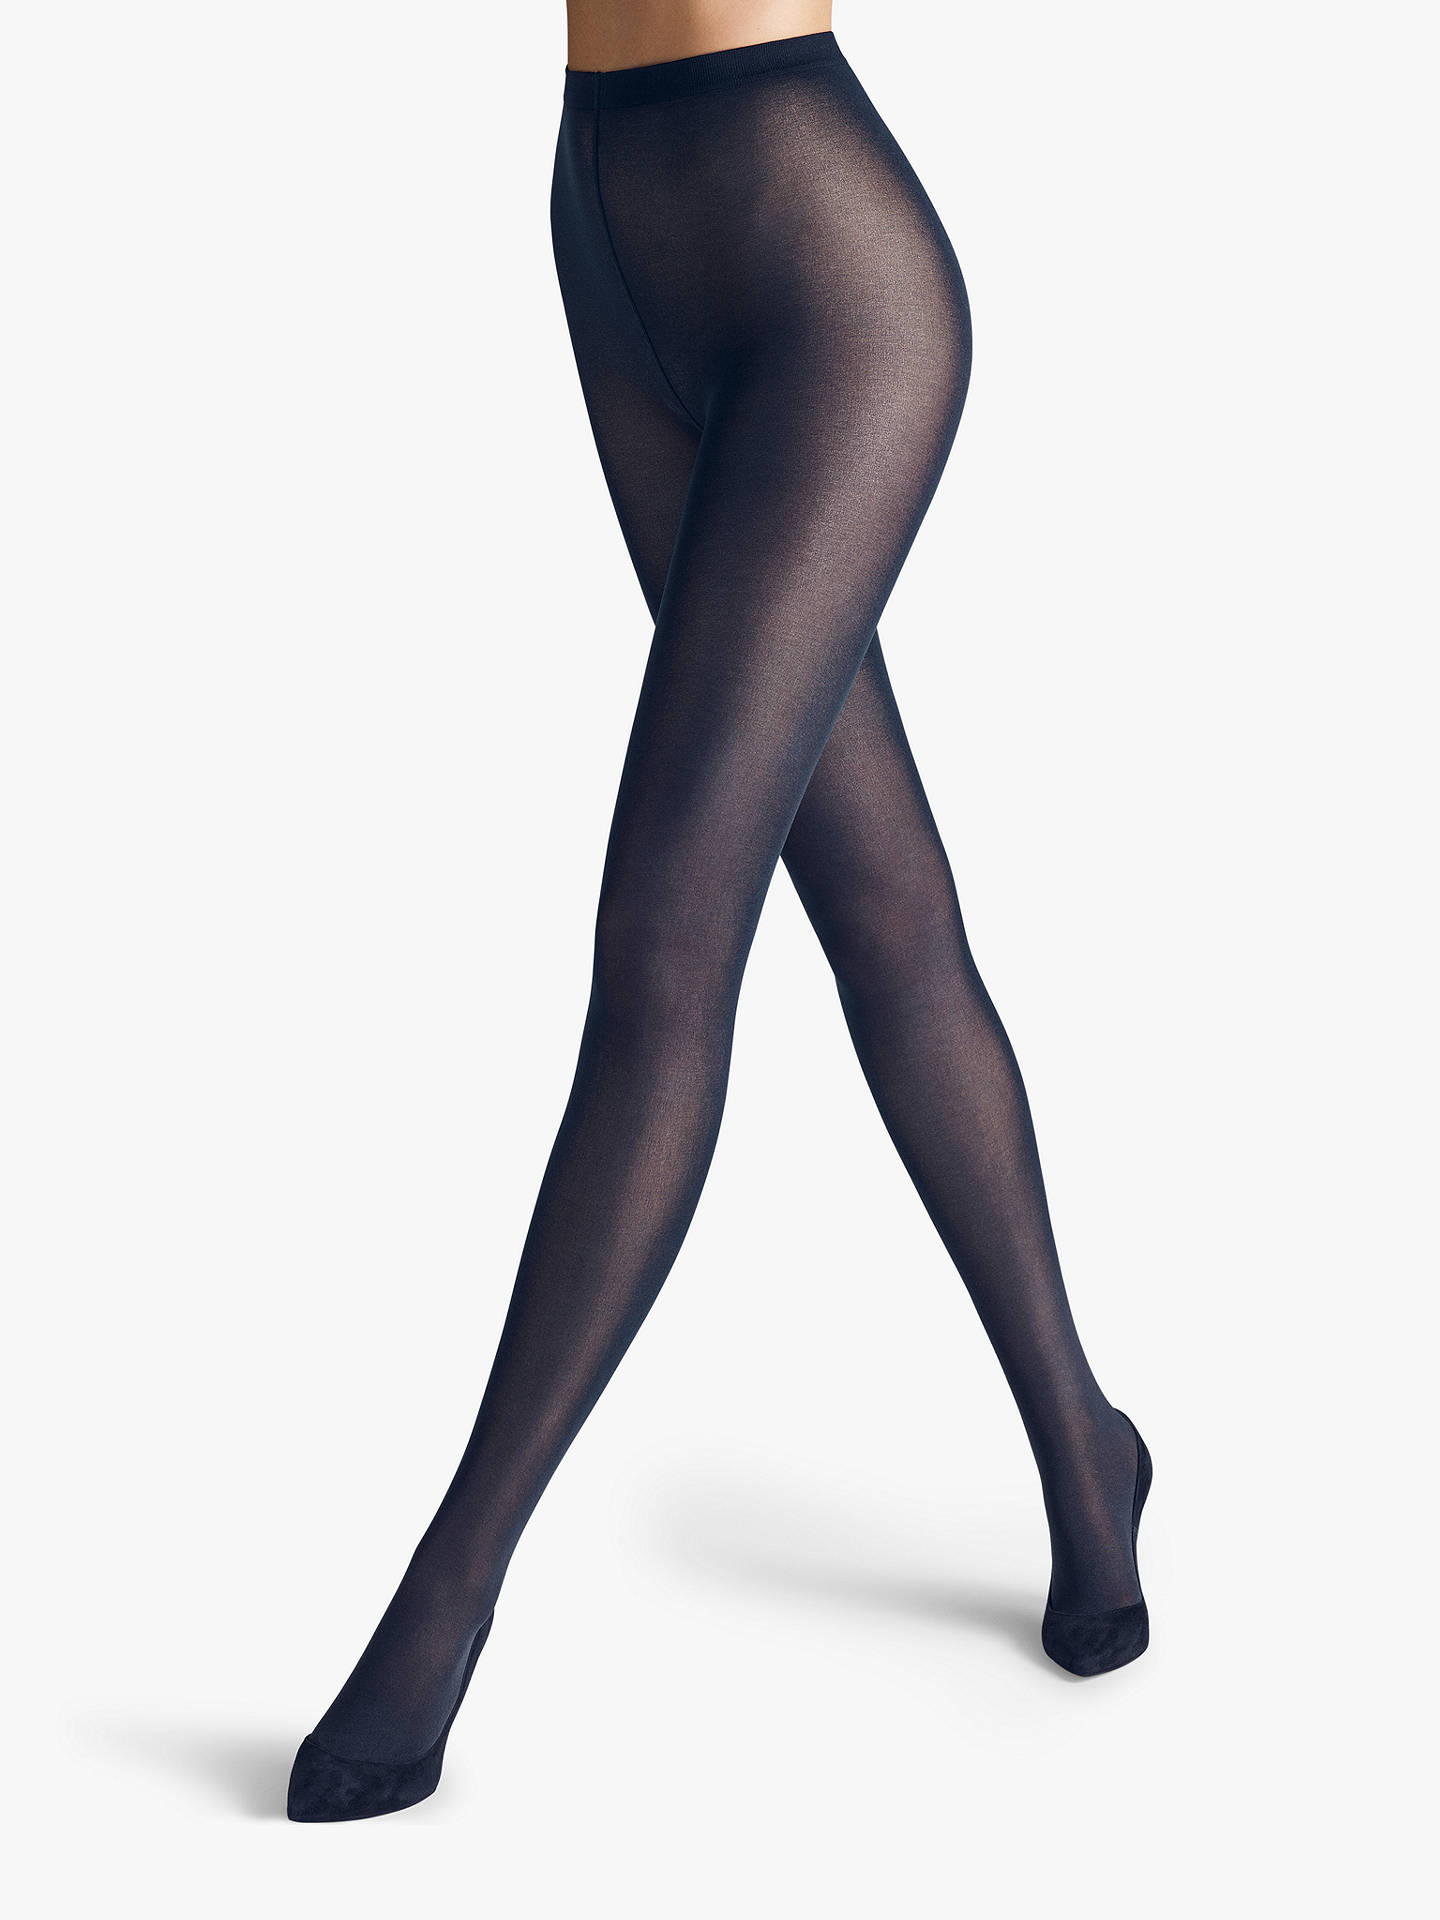 b444c70c9d2 Buy Wolford Velvet De Luxe 50 Denier Opaque Tights